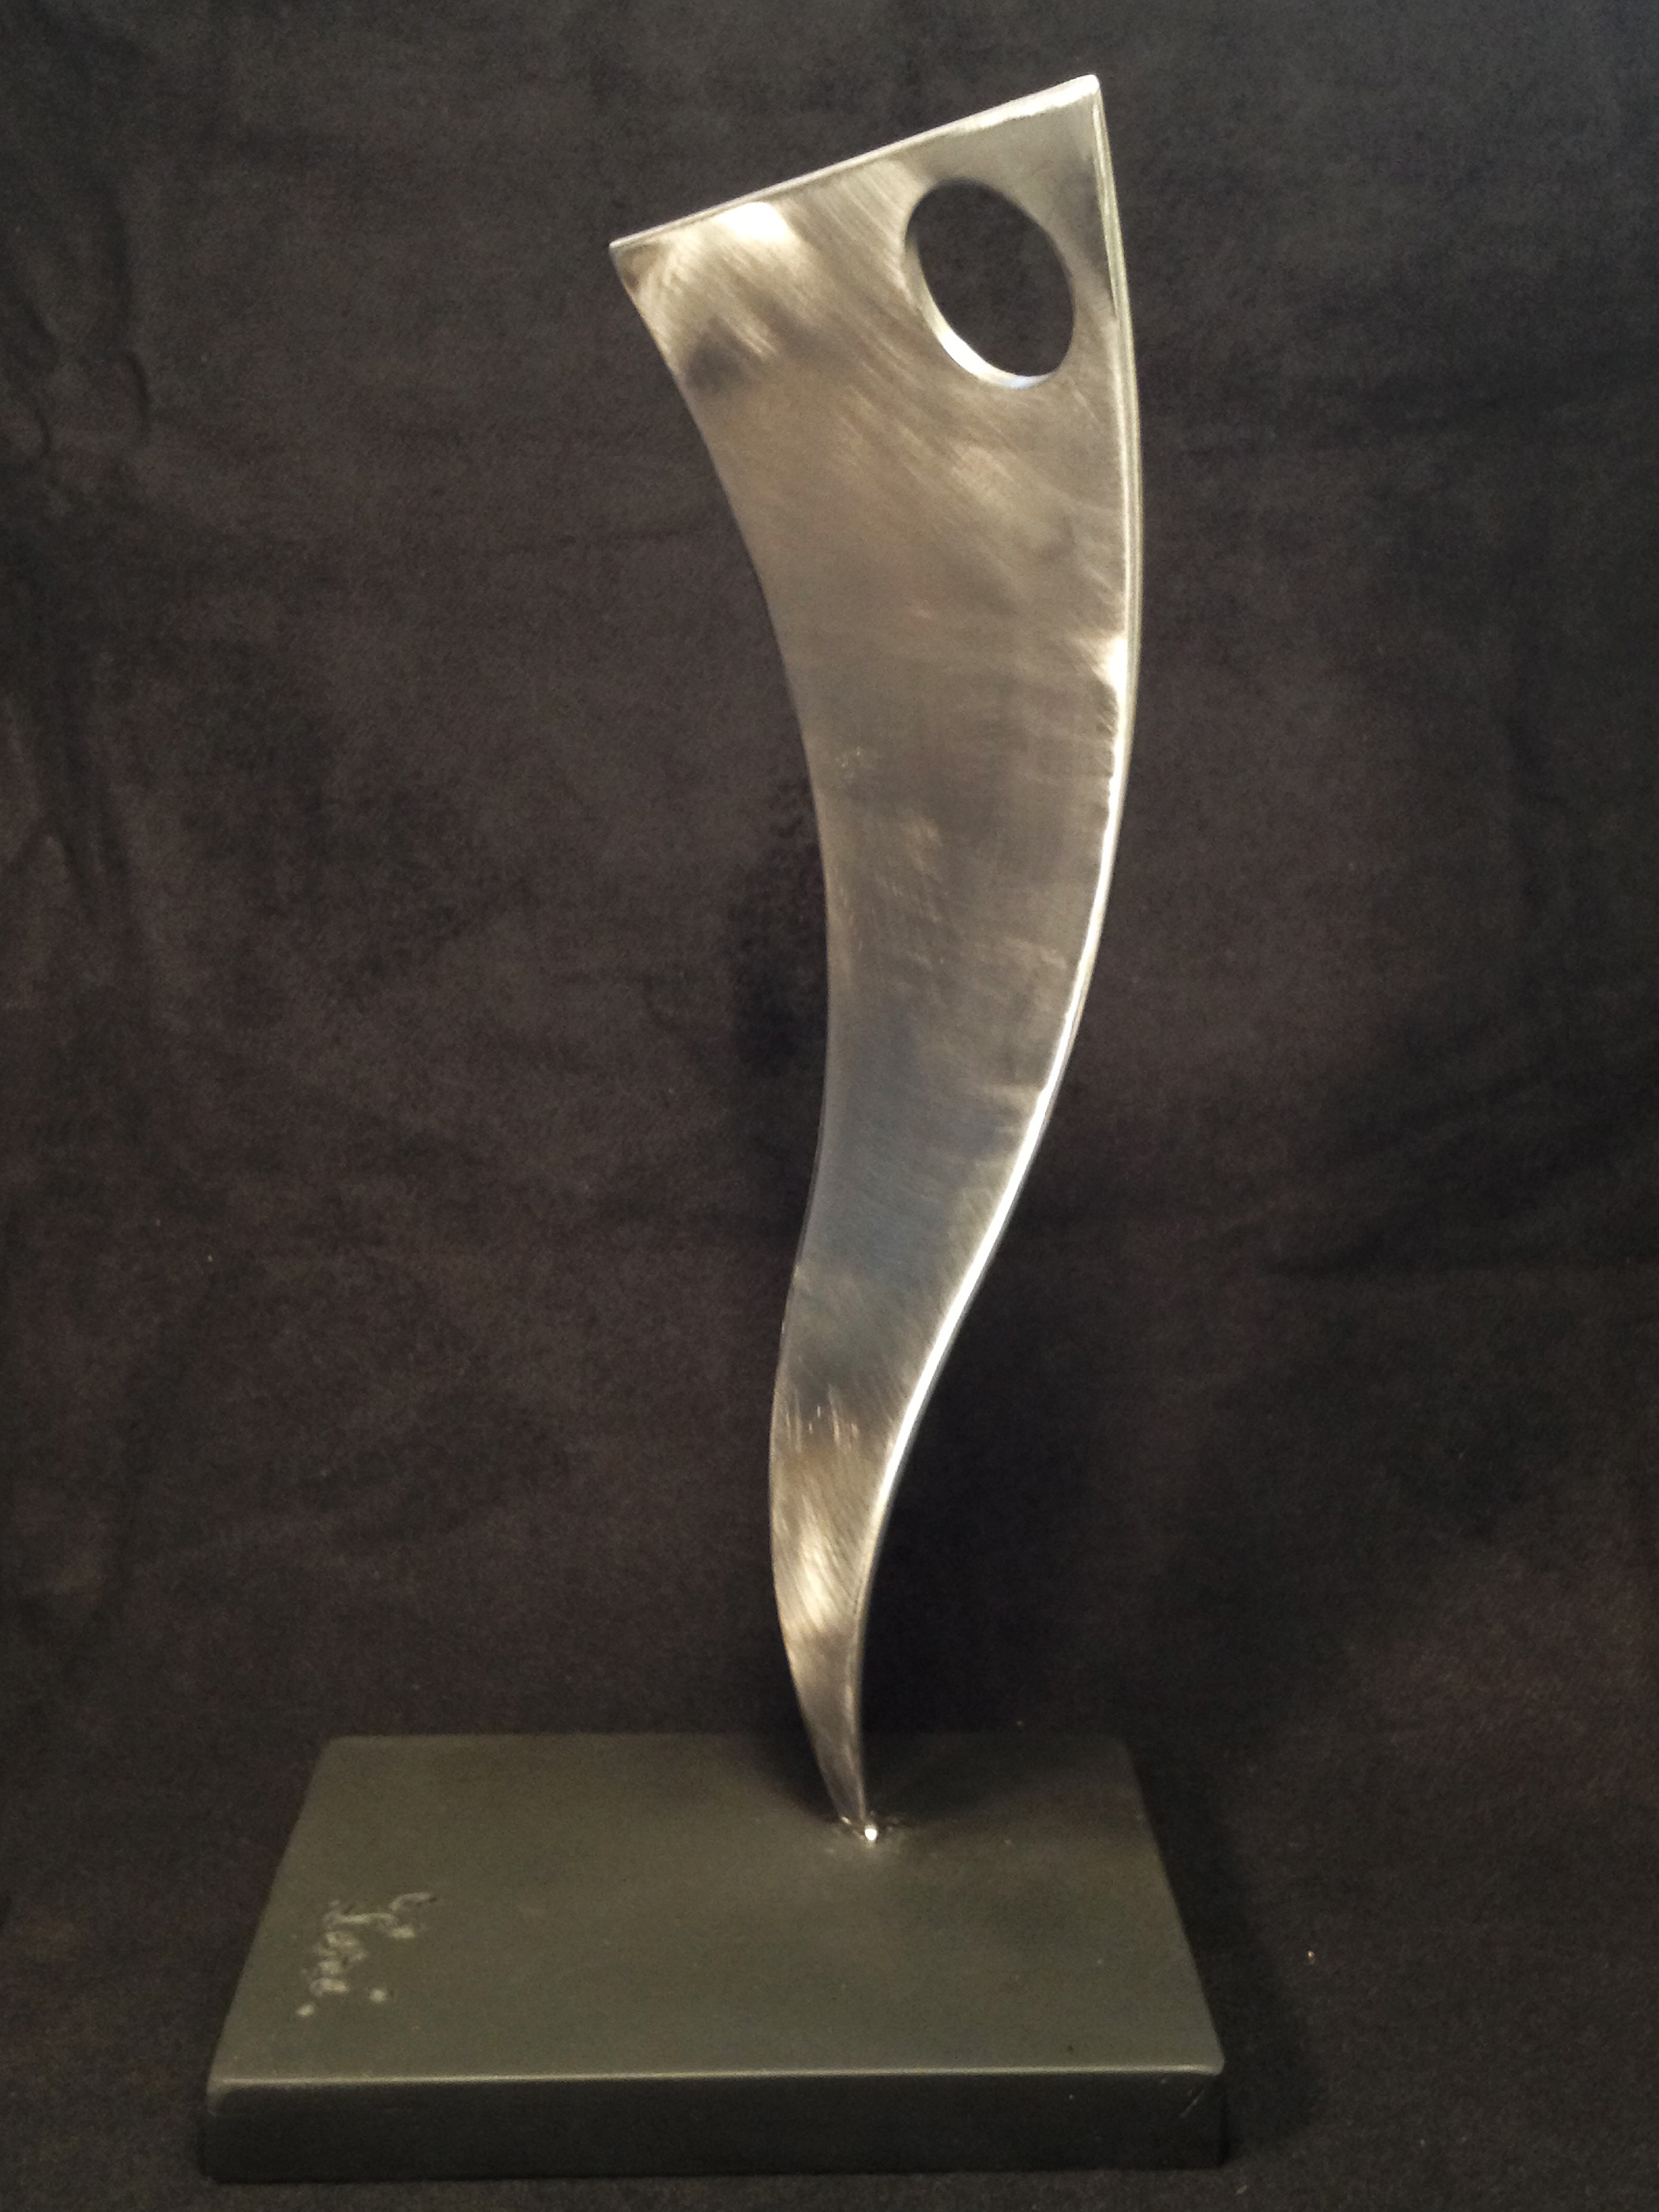 Curve View, 2008, polished, welded steel, 16 x 8 x 6 in, SOLD